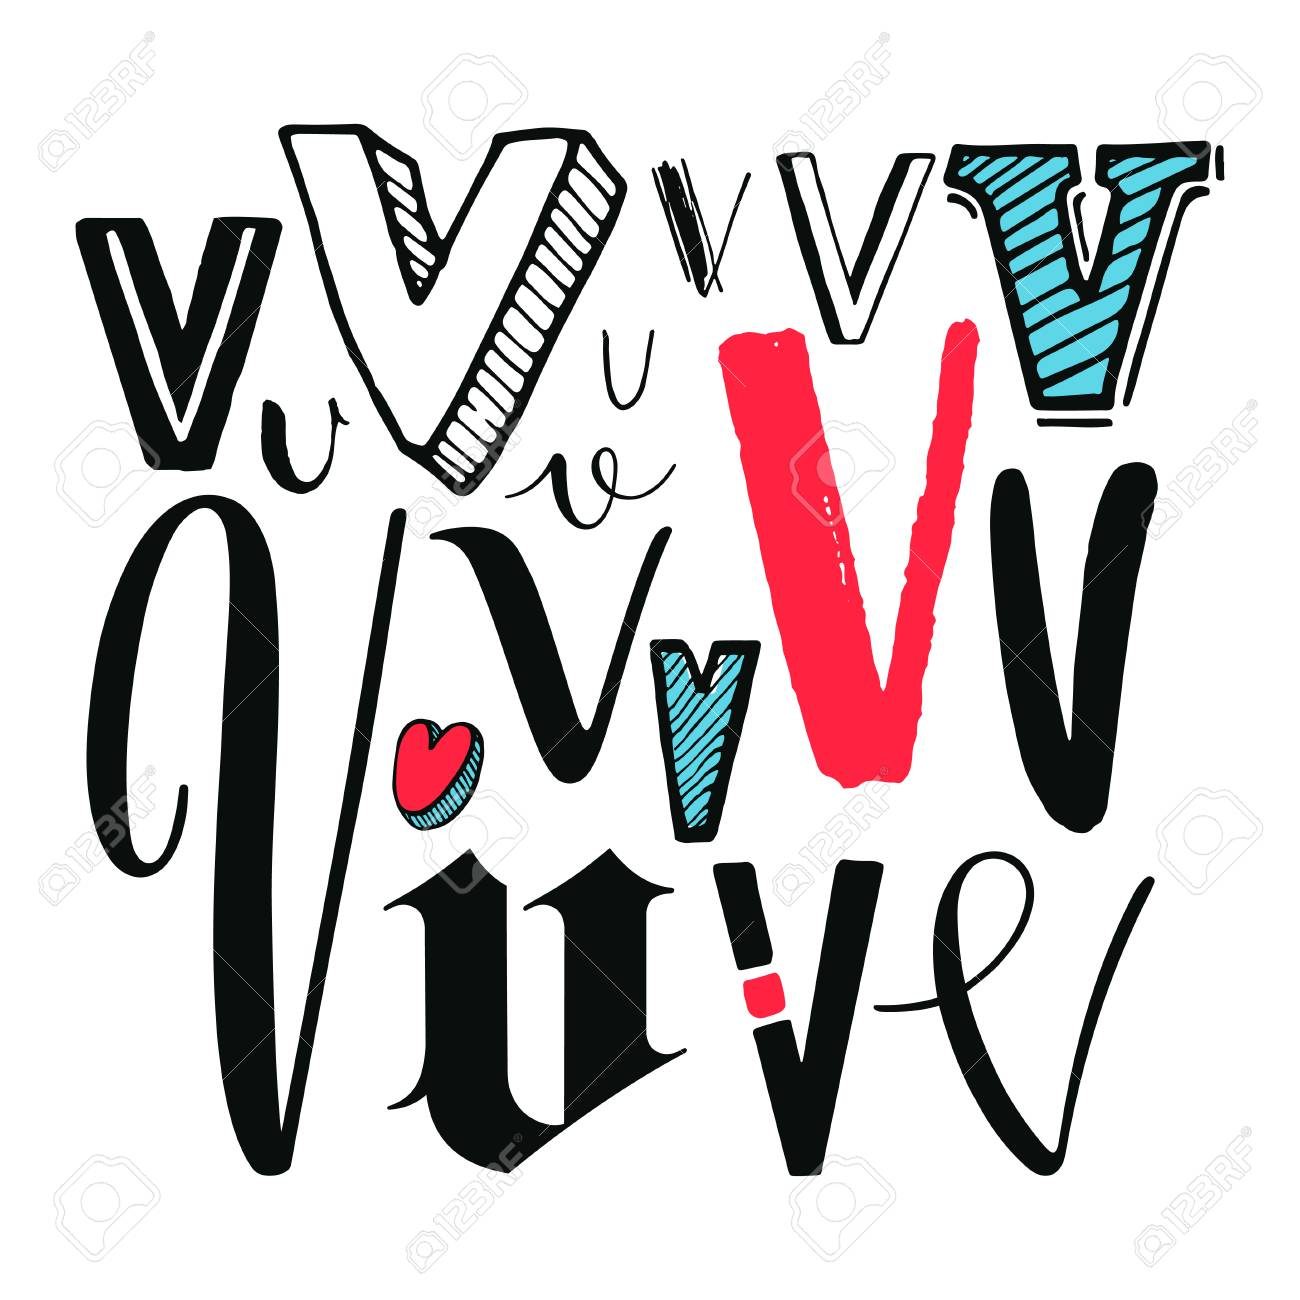 Letters V Set Different Styles HandDrawn Illustration Royalty